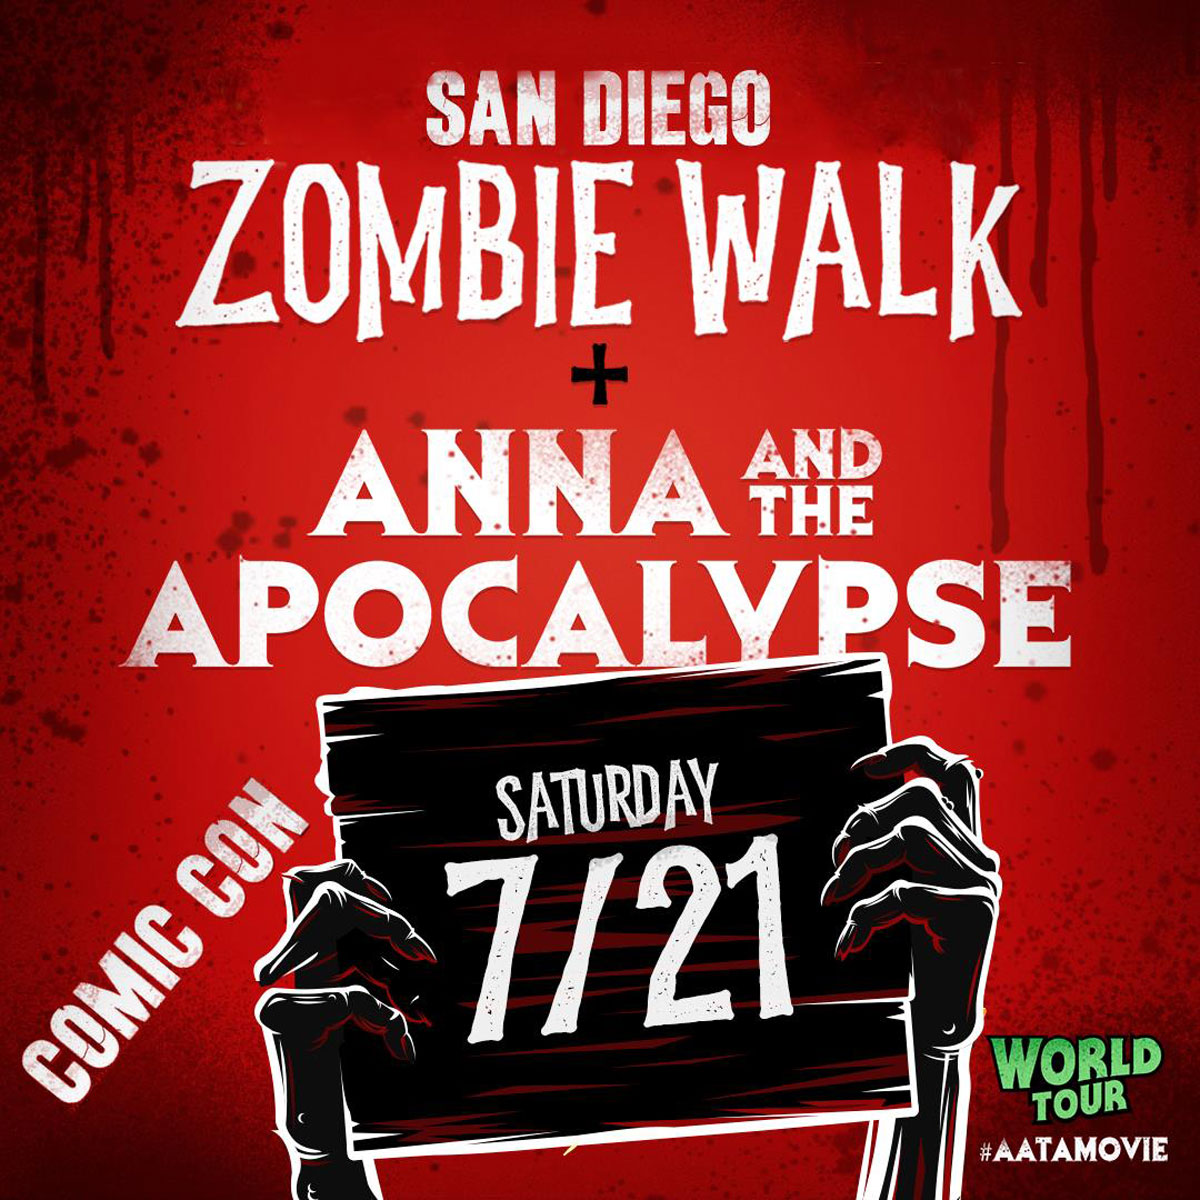 AATA SDCC zombie walk - #SDCC18: New ANNA AND THE APOCALYPSE Poster Unveiled Just in Time for Zombie Walk!